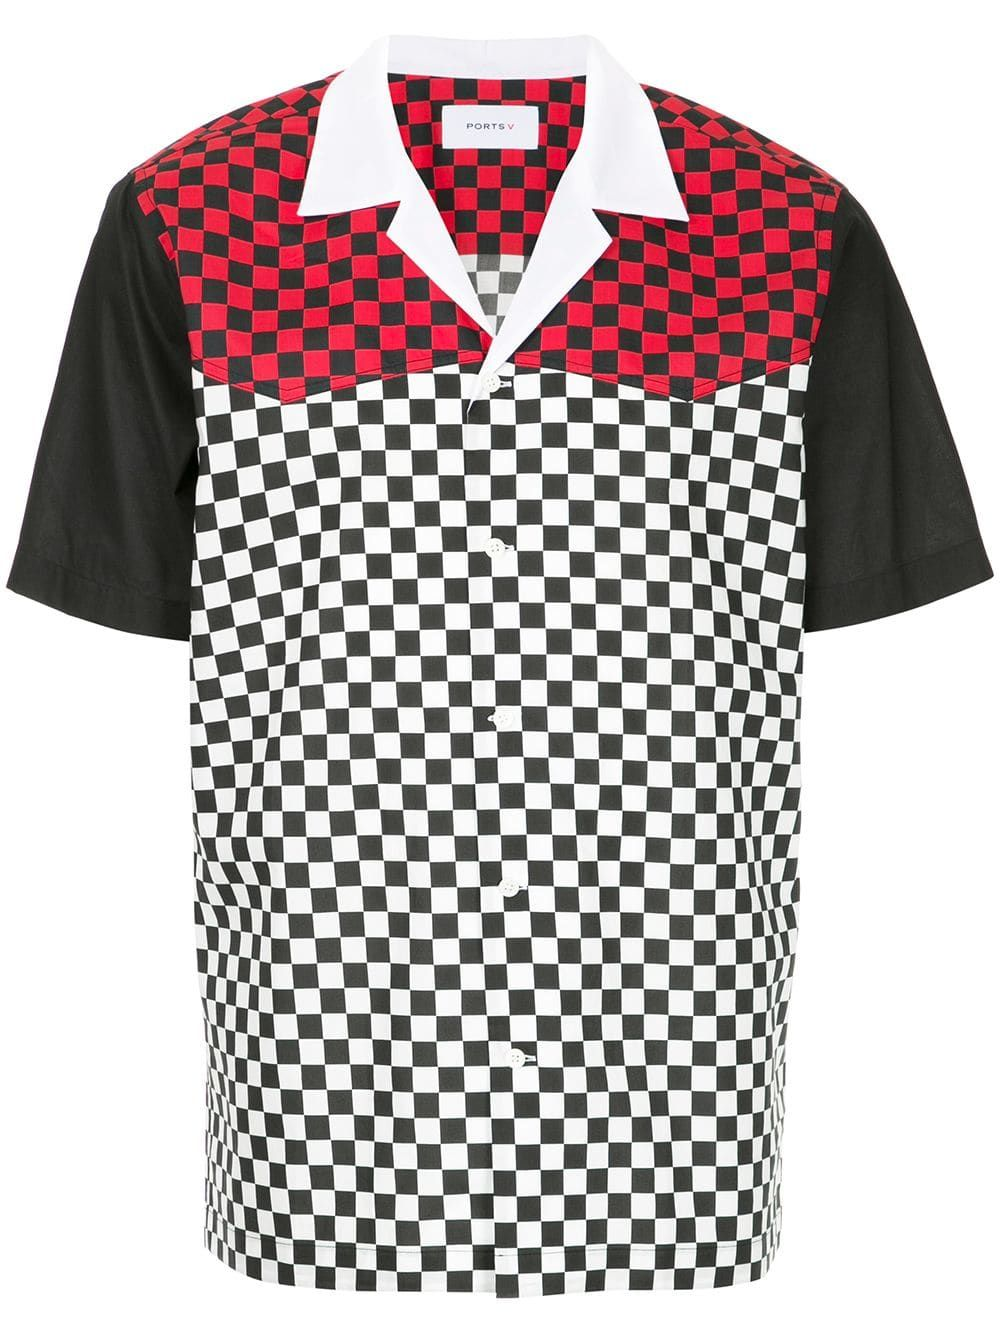 Checkered And Colour Block Print Shirt Printed Shirts Shirts